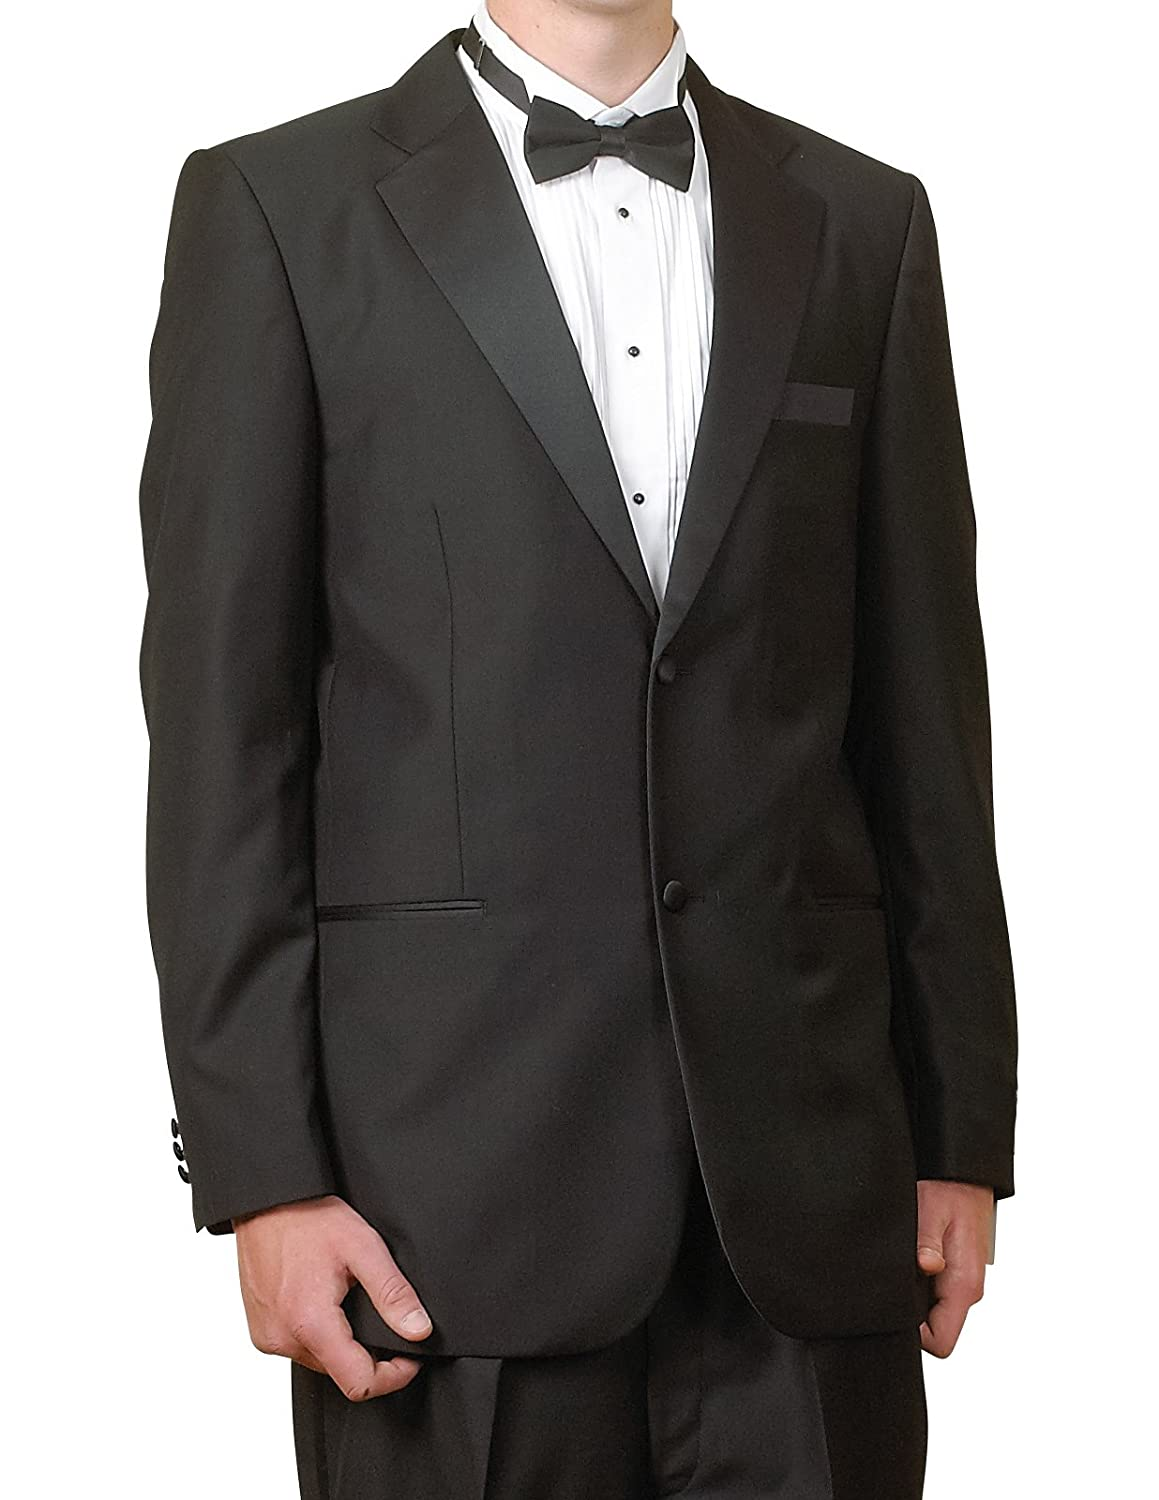 New Mens Super 140's Black Italian Merino Virgin Wool Tuxedo